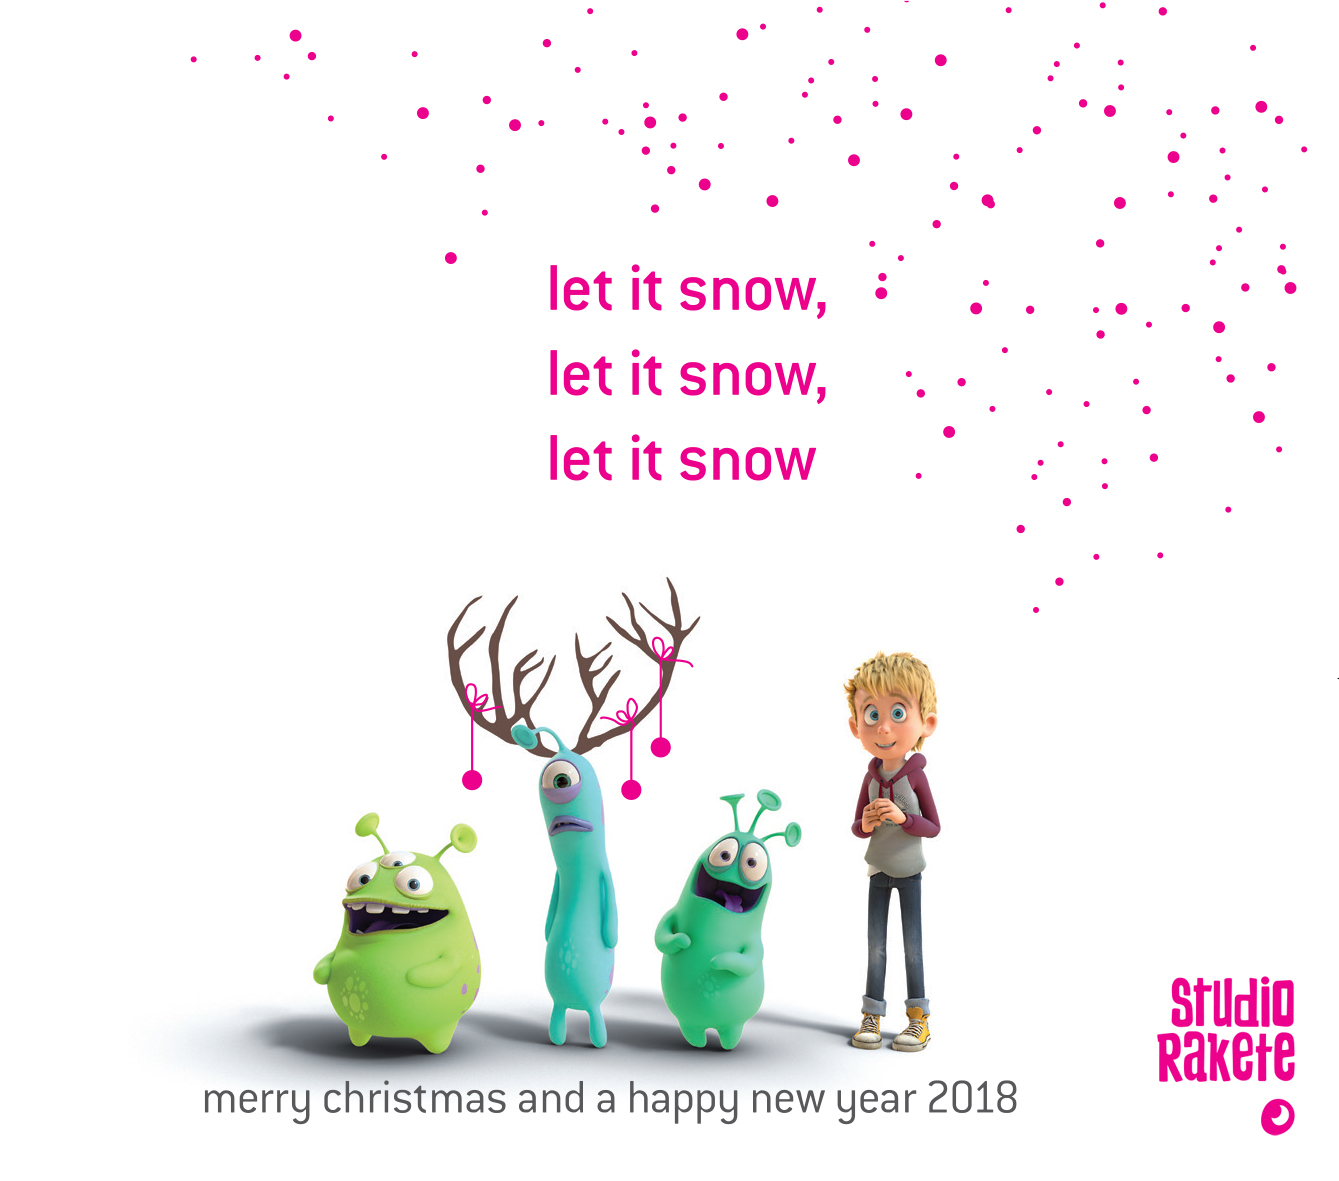 let_it_snow_happy2018